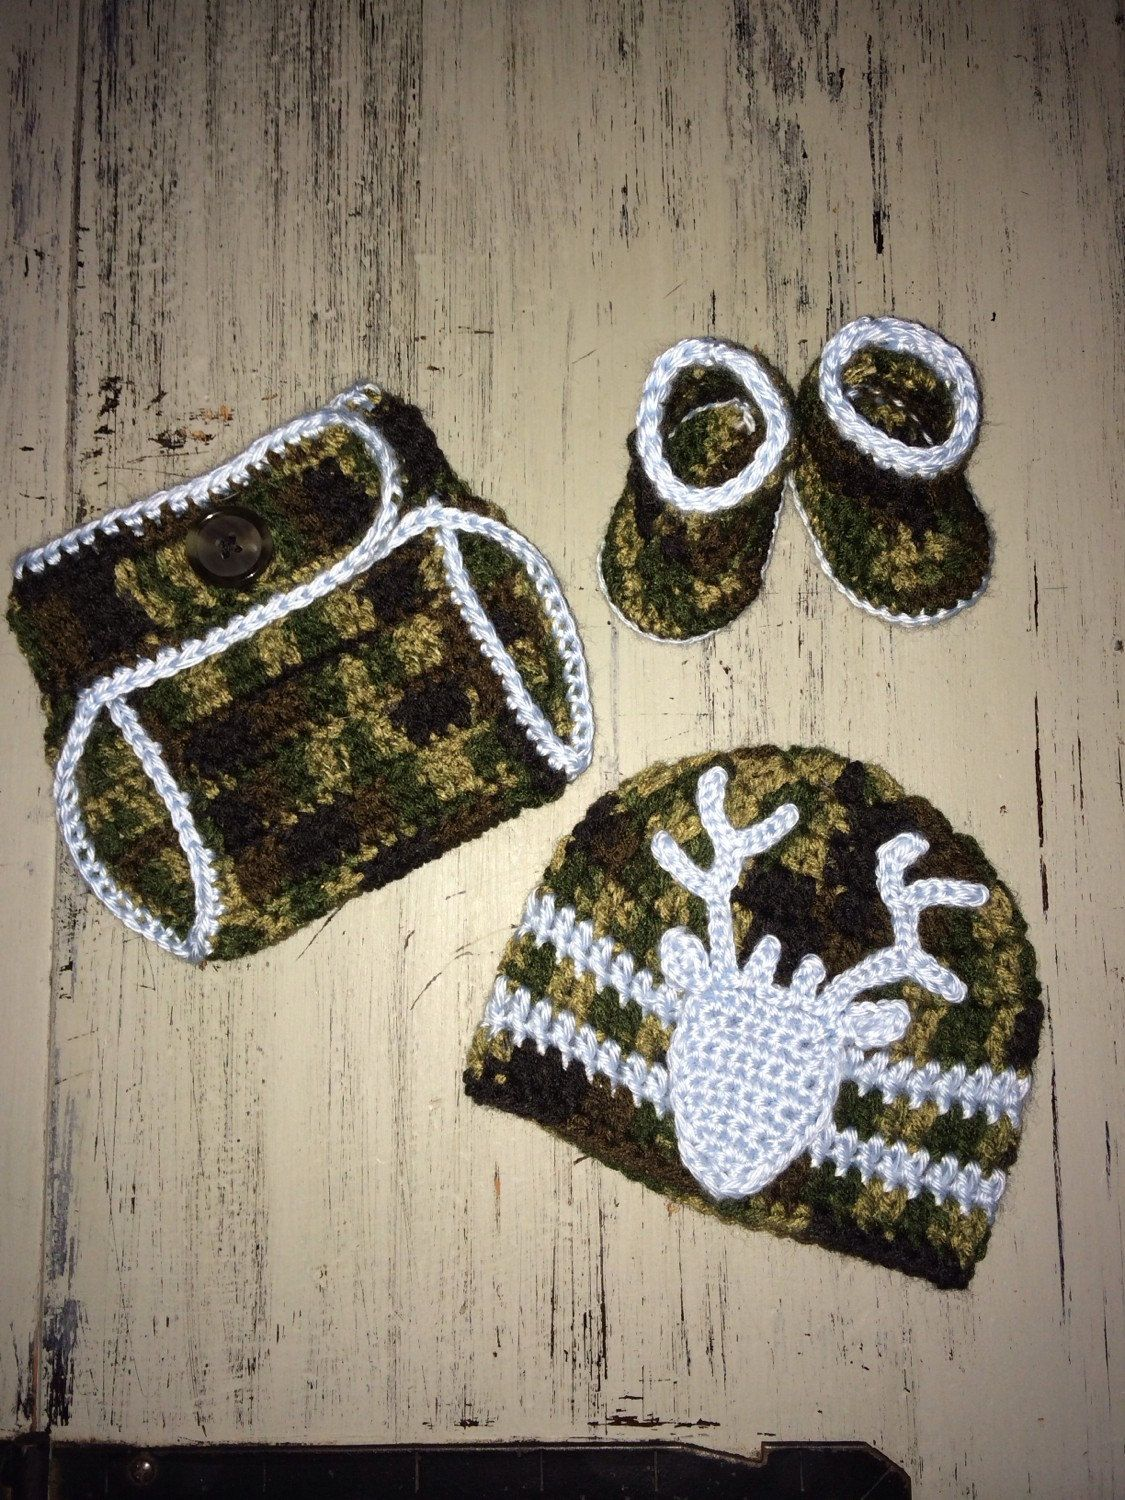 Newborn crochet camo hat diaper cover and booties trimmed in baby crochet newborn crochet camo hat bankloansurffo Images